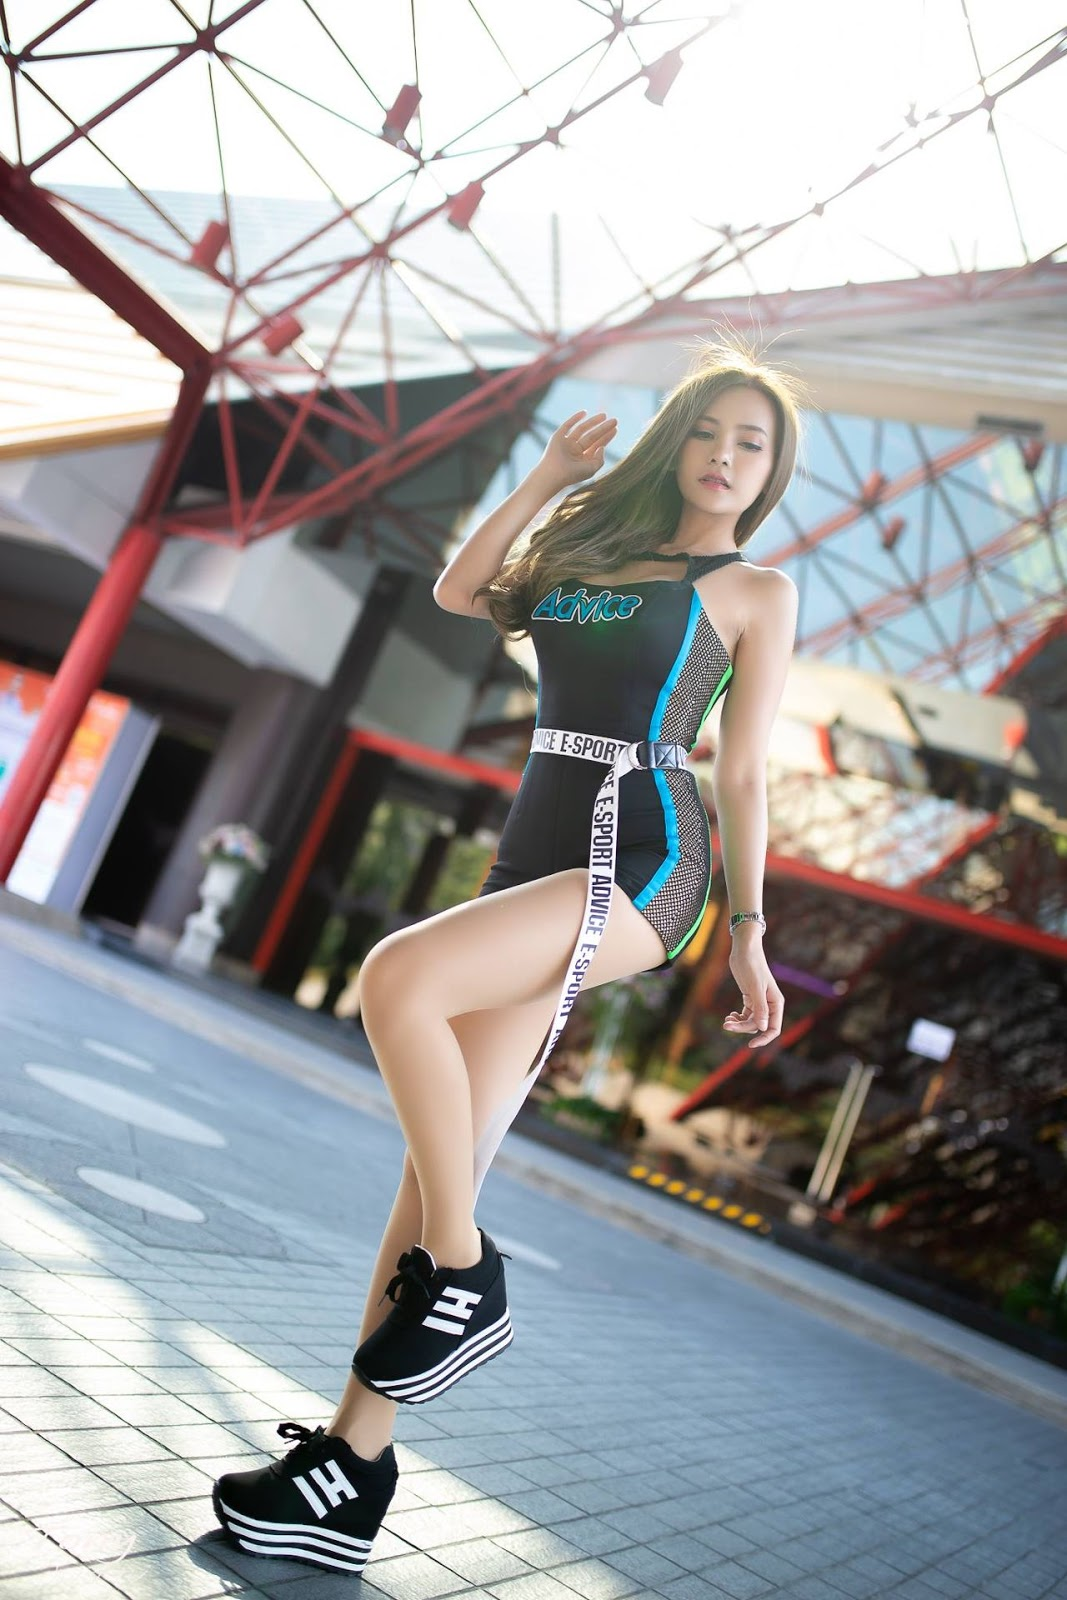 Image-Thailand-Hot-Model-Thai-PG-At-Commart-2018-TruePic.net- Picture-6